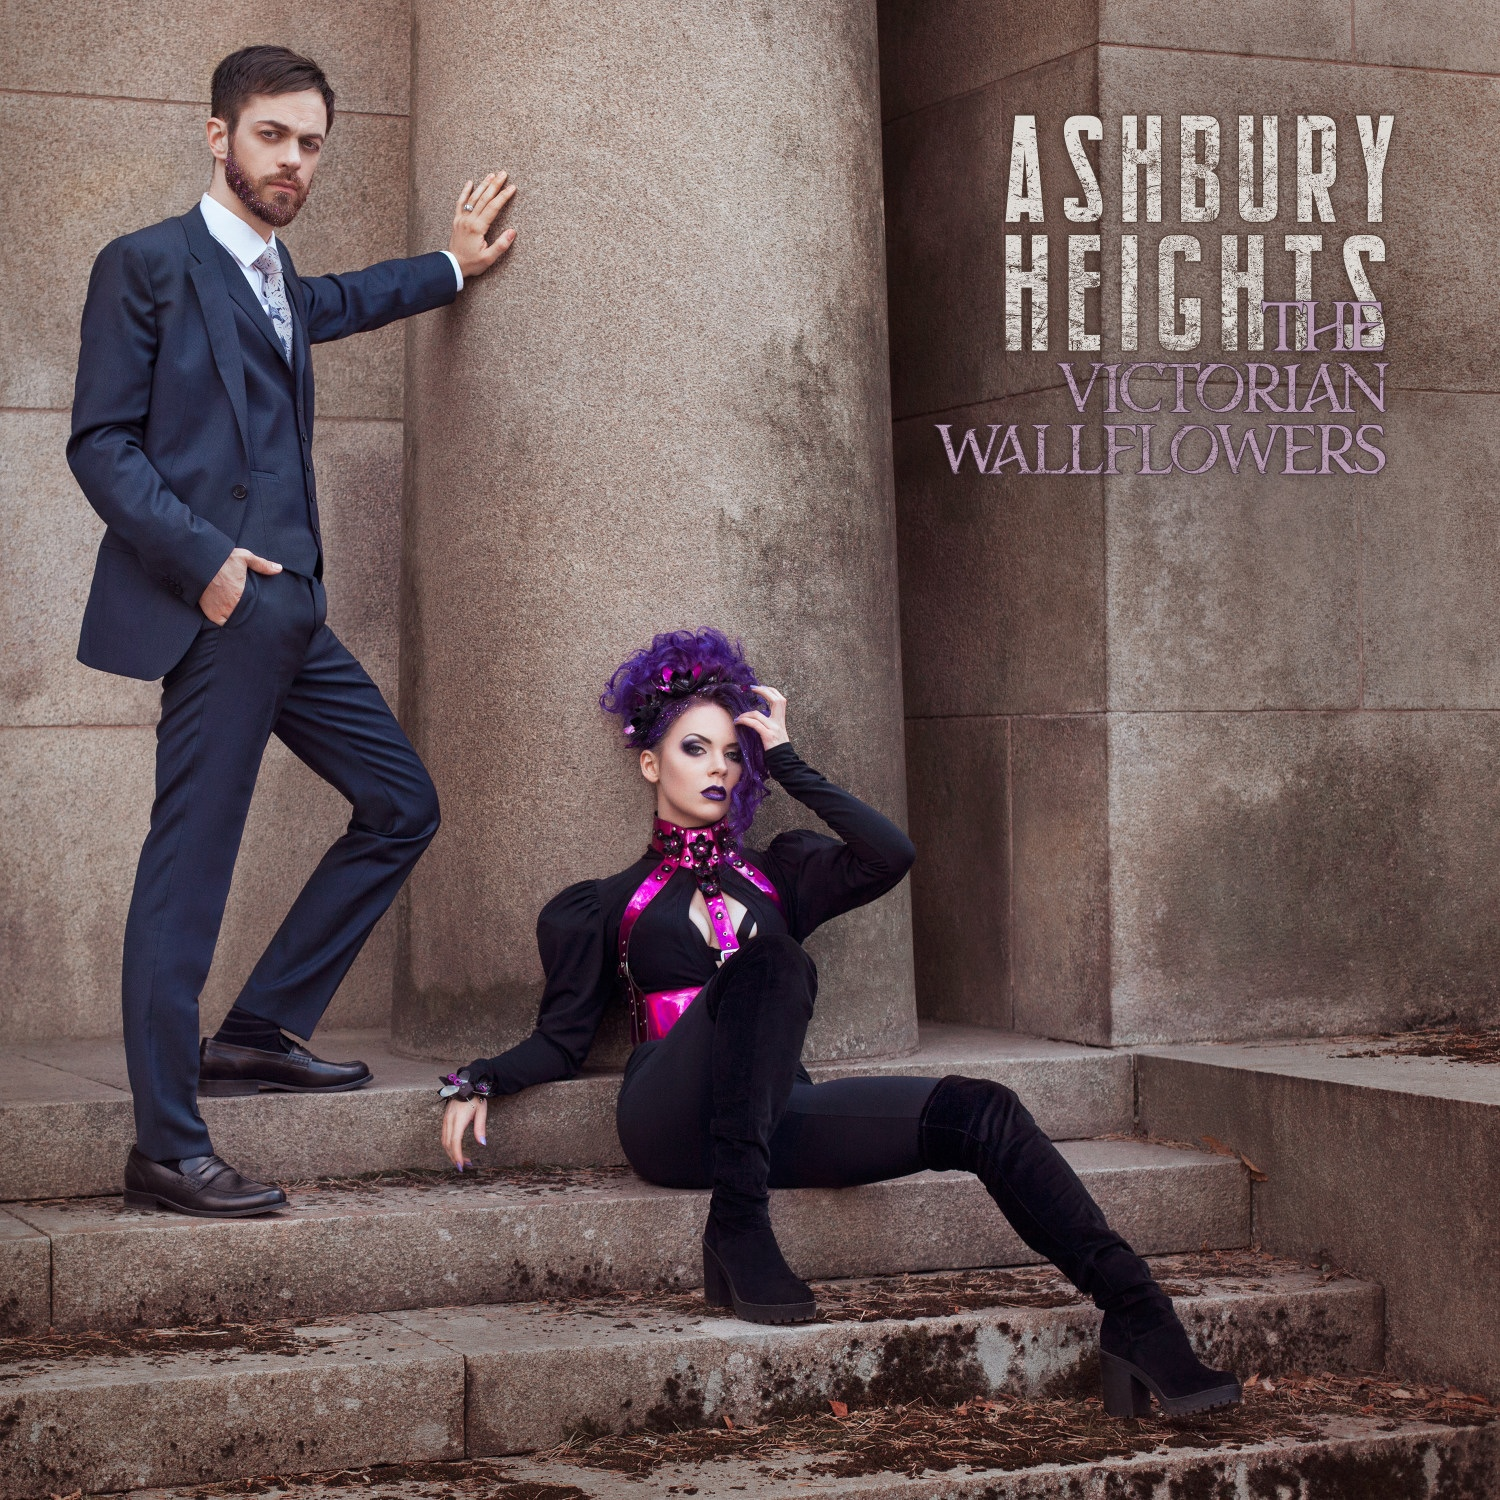 ASHBURY HEIGHTS The Victorian Wallflowers CD 2018 (VÖ 24.08)